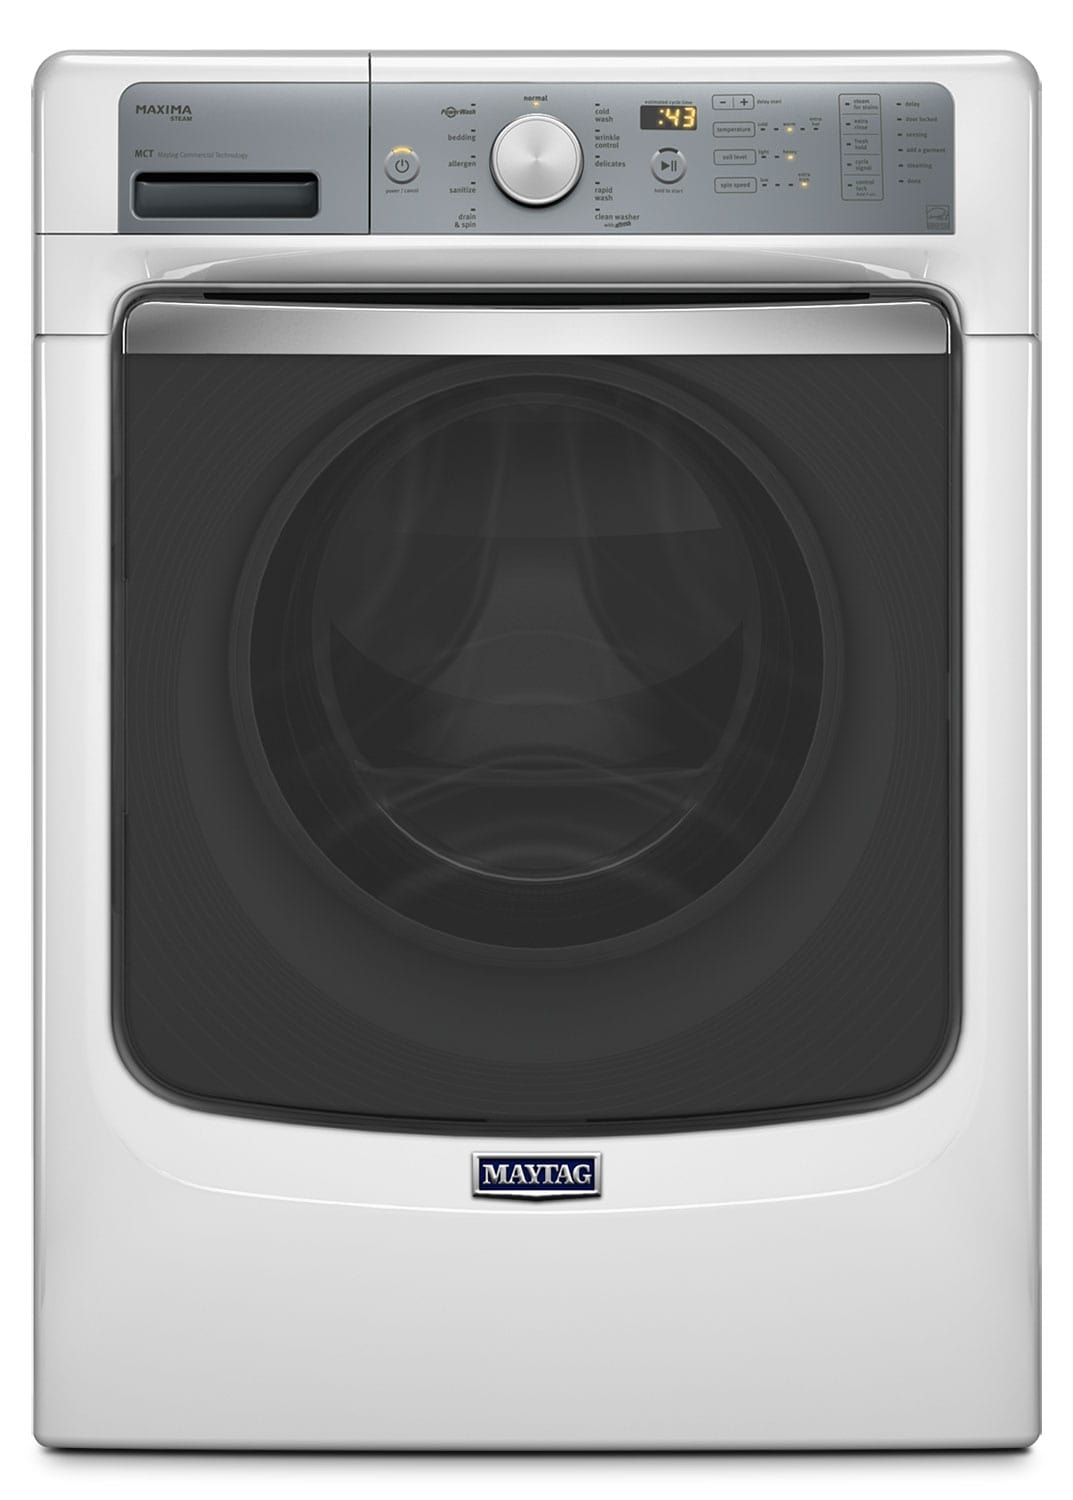 Maytag White Front-Load Washer (5.2 Cu. Ft. IEC) - MHW7100DW